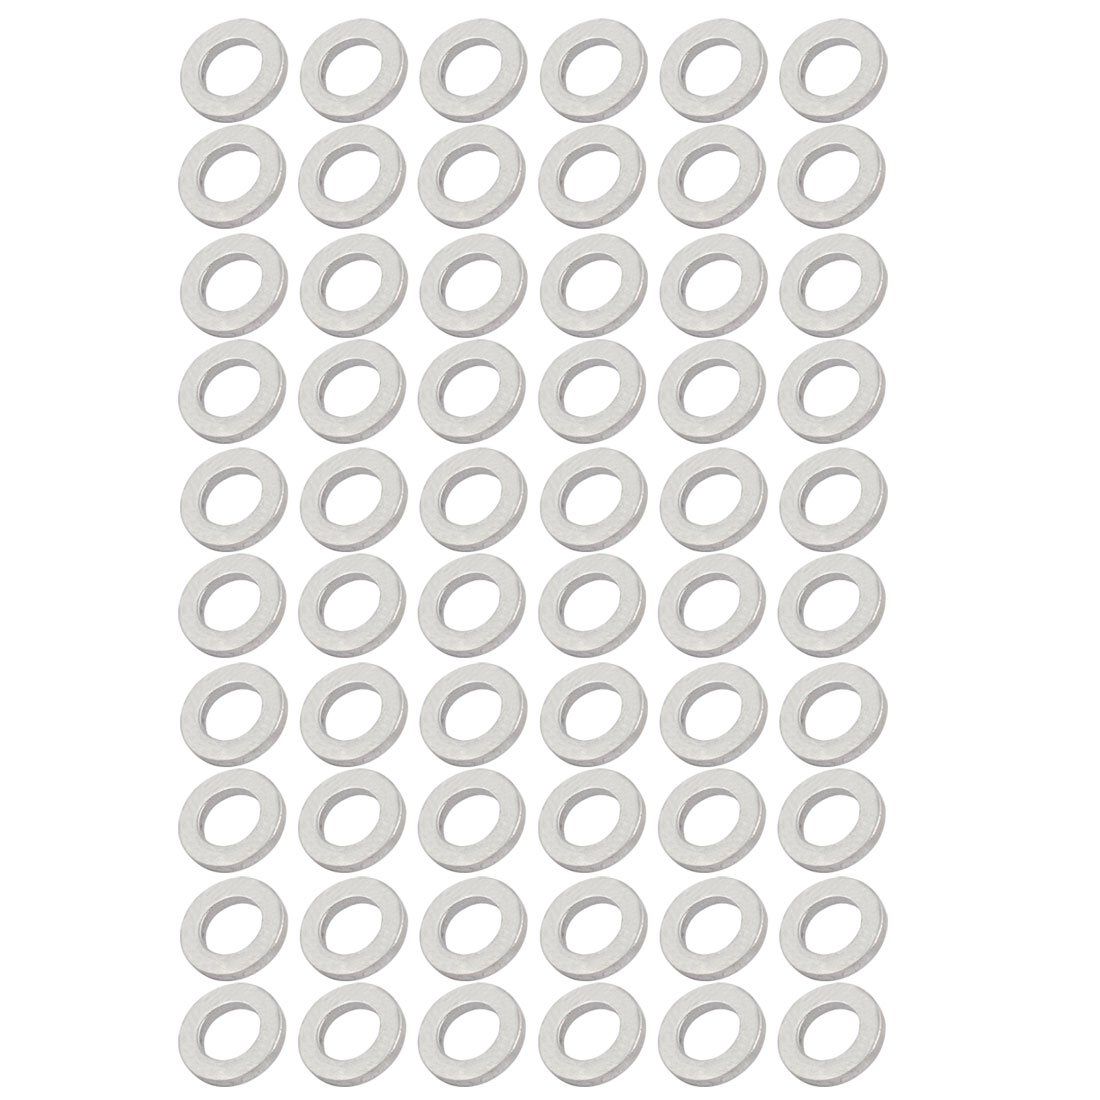 uxcell 8mmx14mmx2mm Engine Oil Drain Plug Crush Gasket Aluminum Washer Seals 60pcs